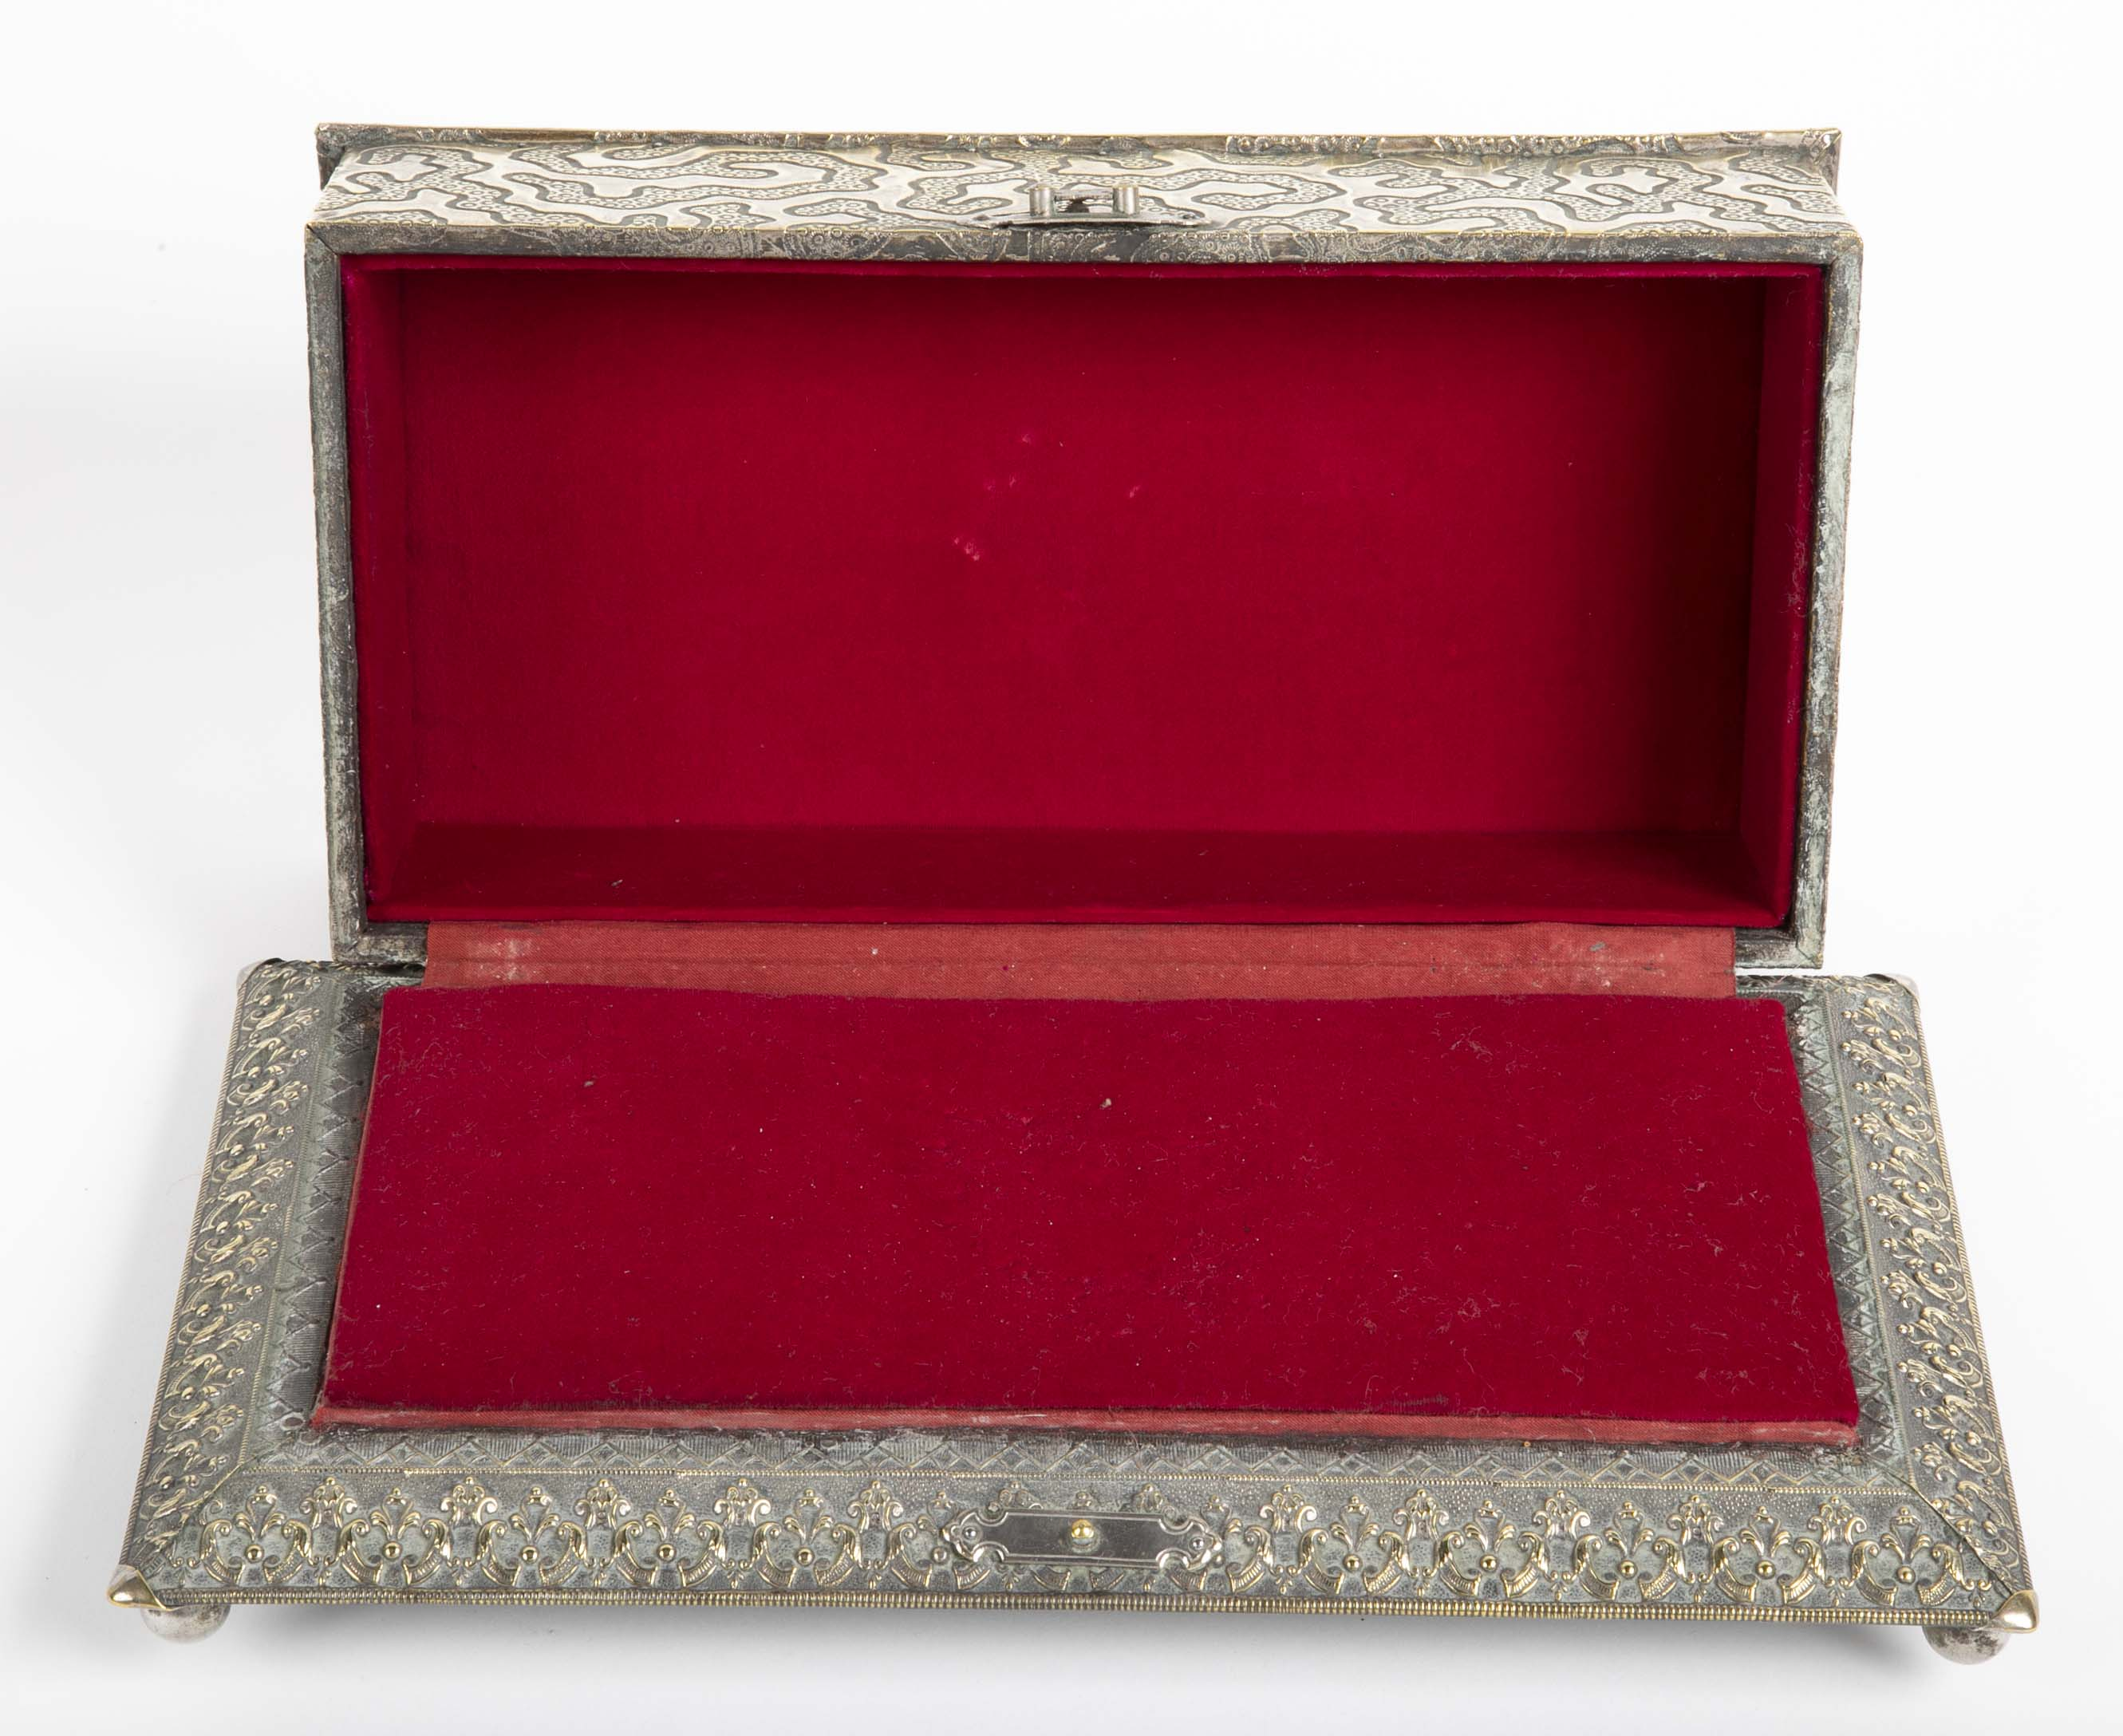 Aesthetic Movement Silver Presentation Box